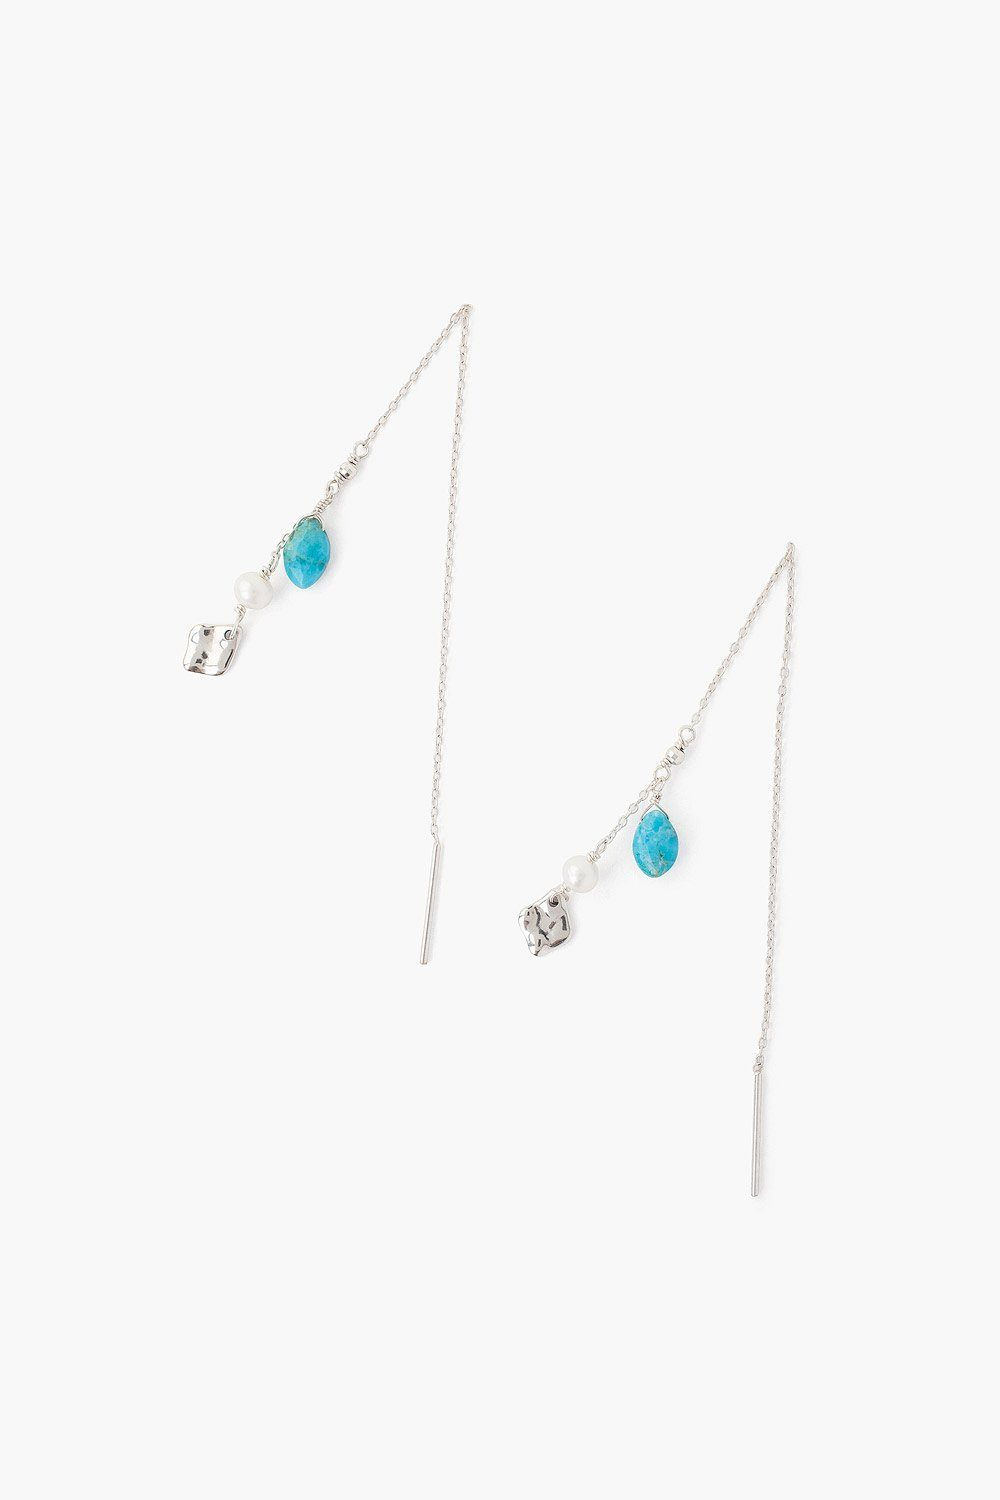 Turquoise and White Pearl Thread Thru Earrings